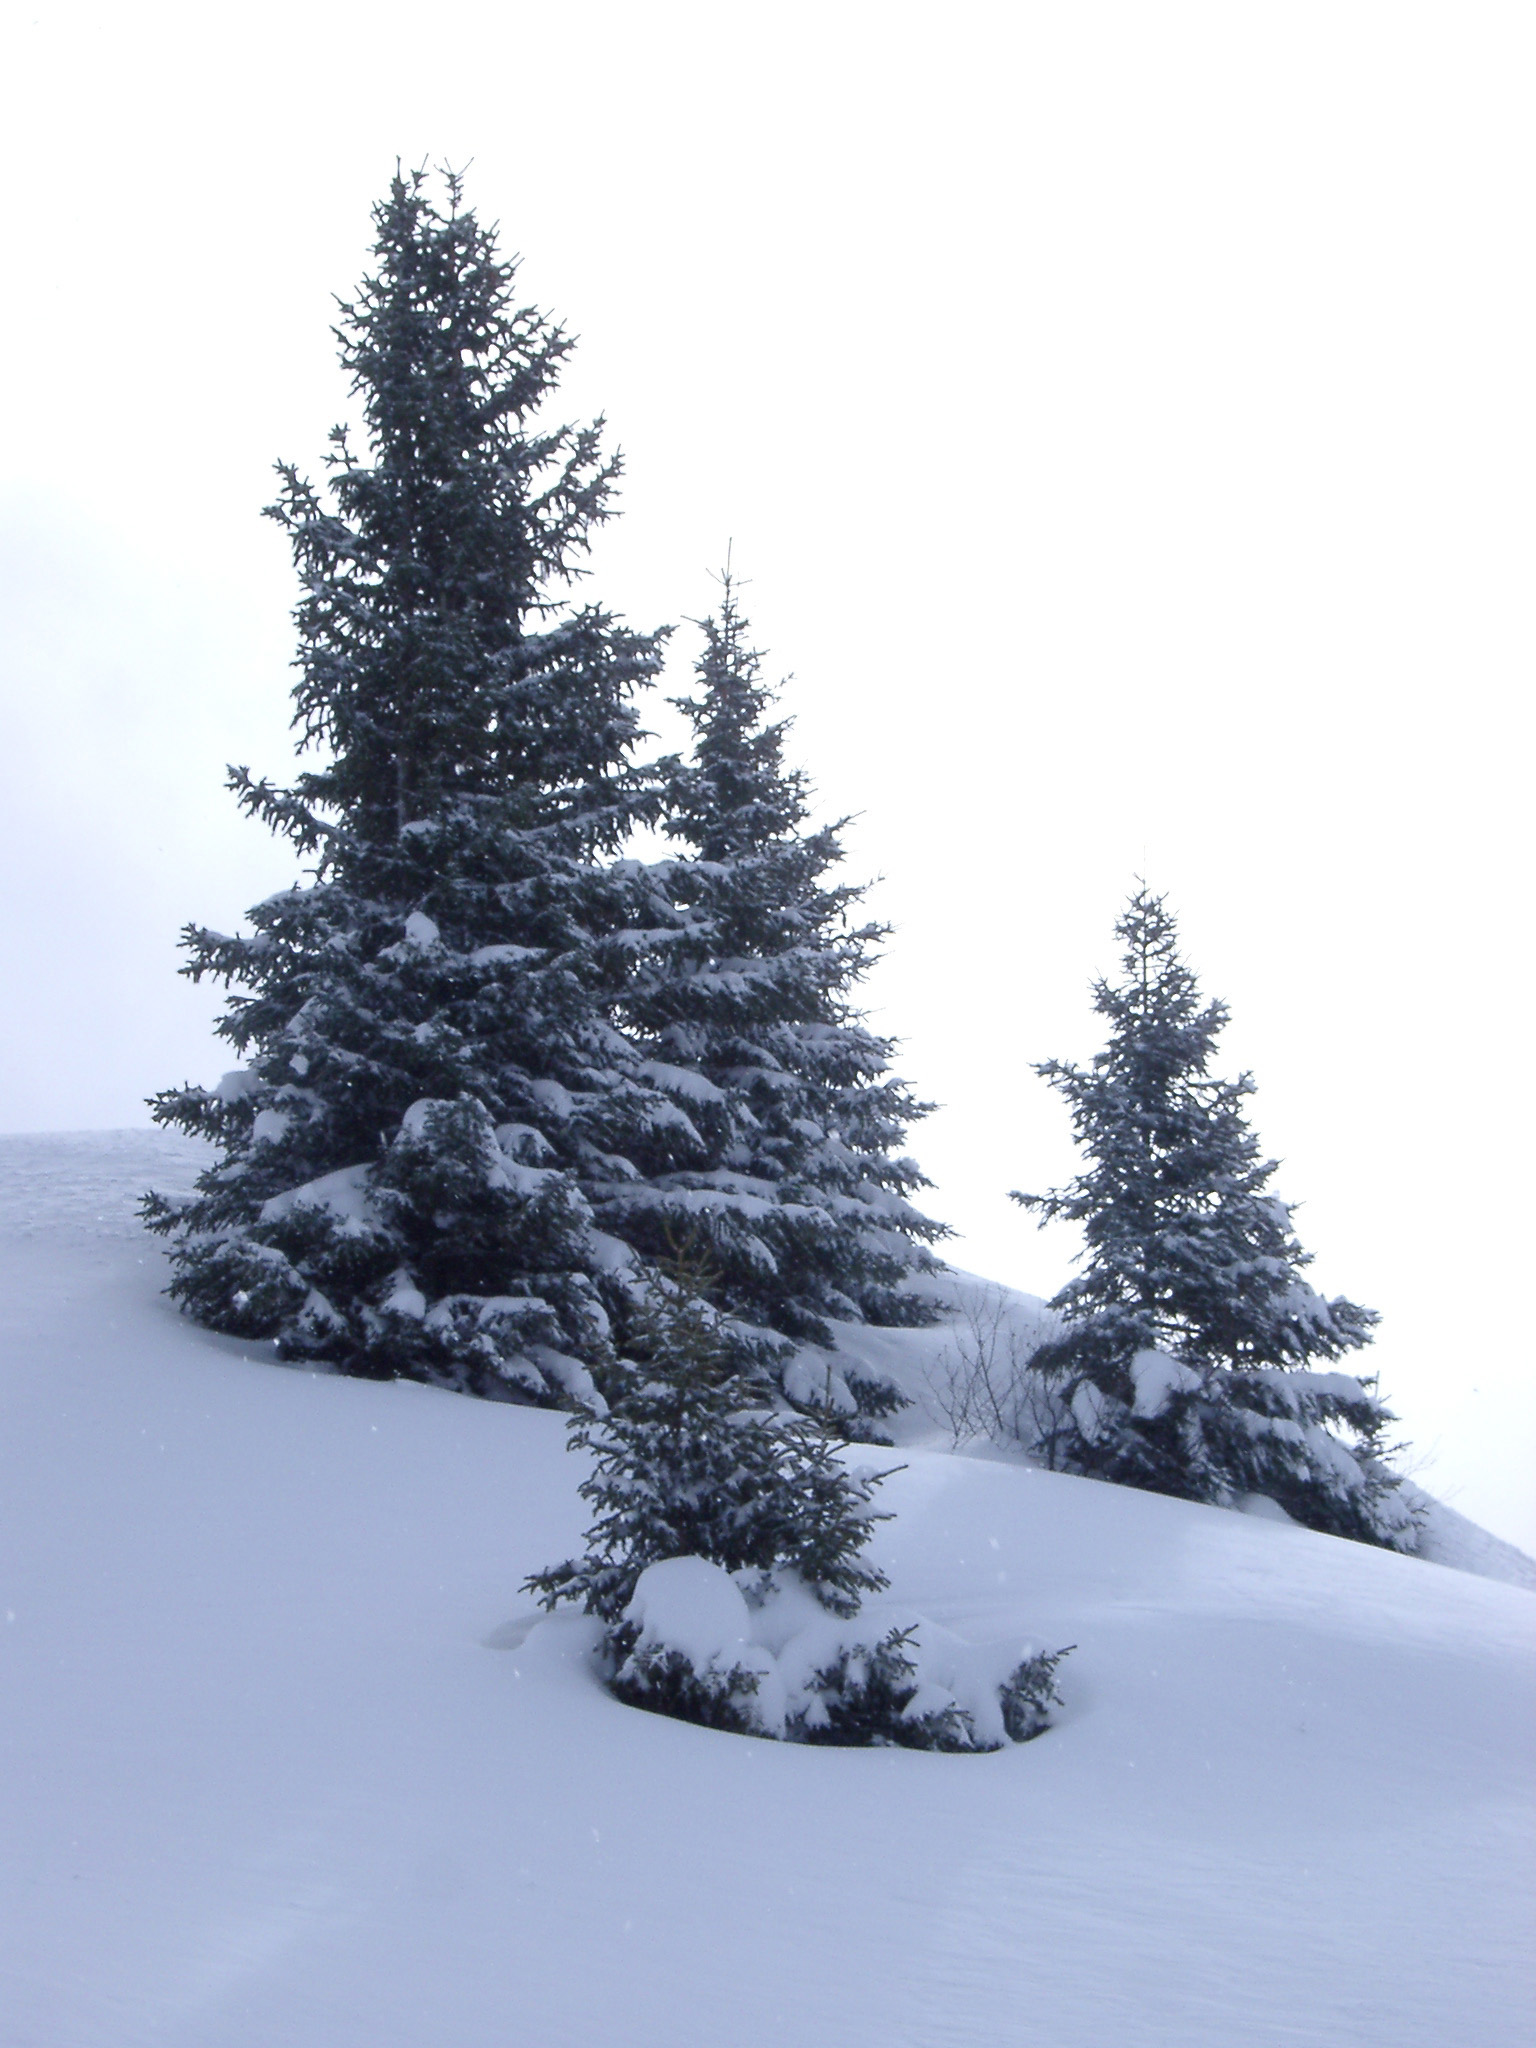 Small Size Christmas Fir Trees Filled with Snow on Winter Holiday Season.